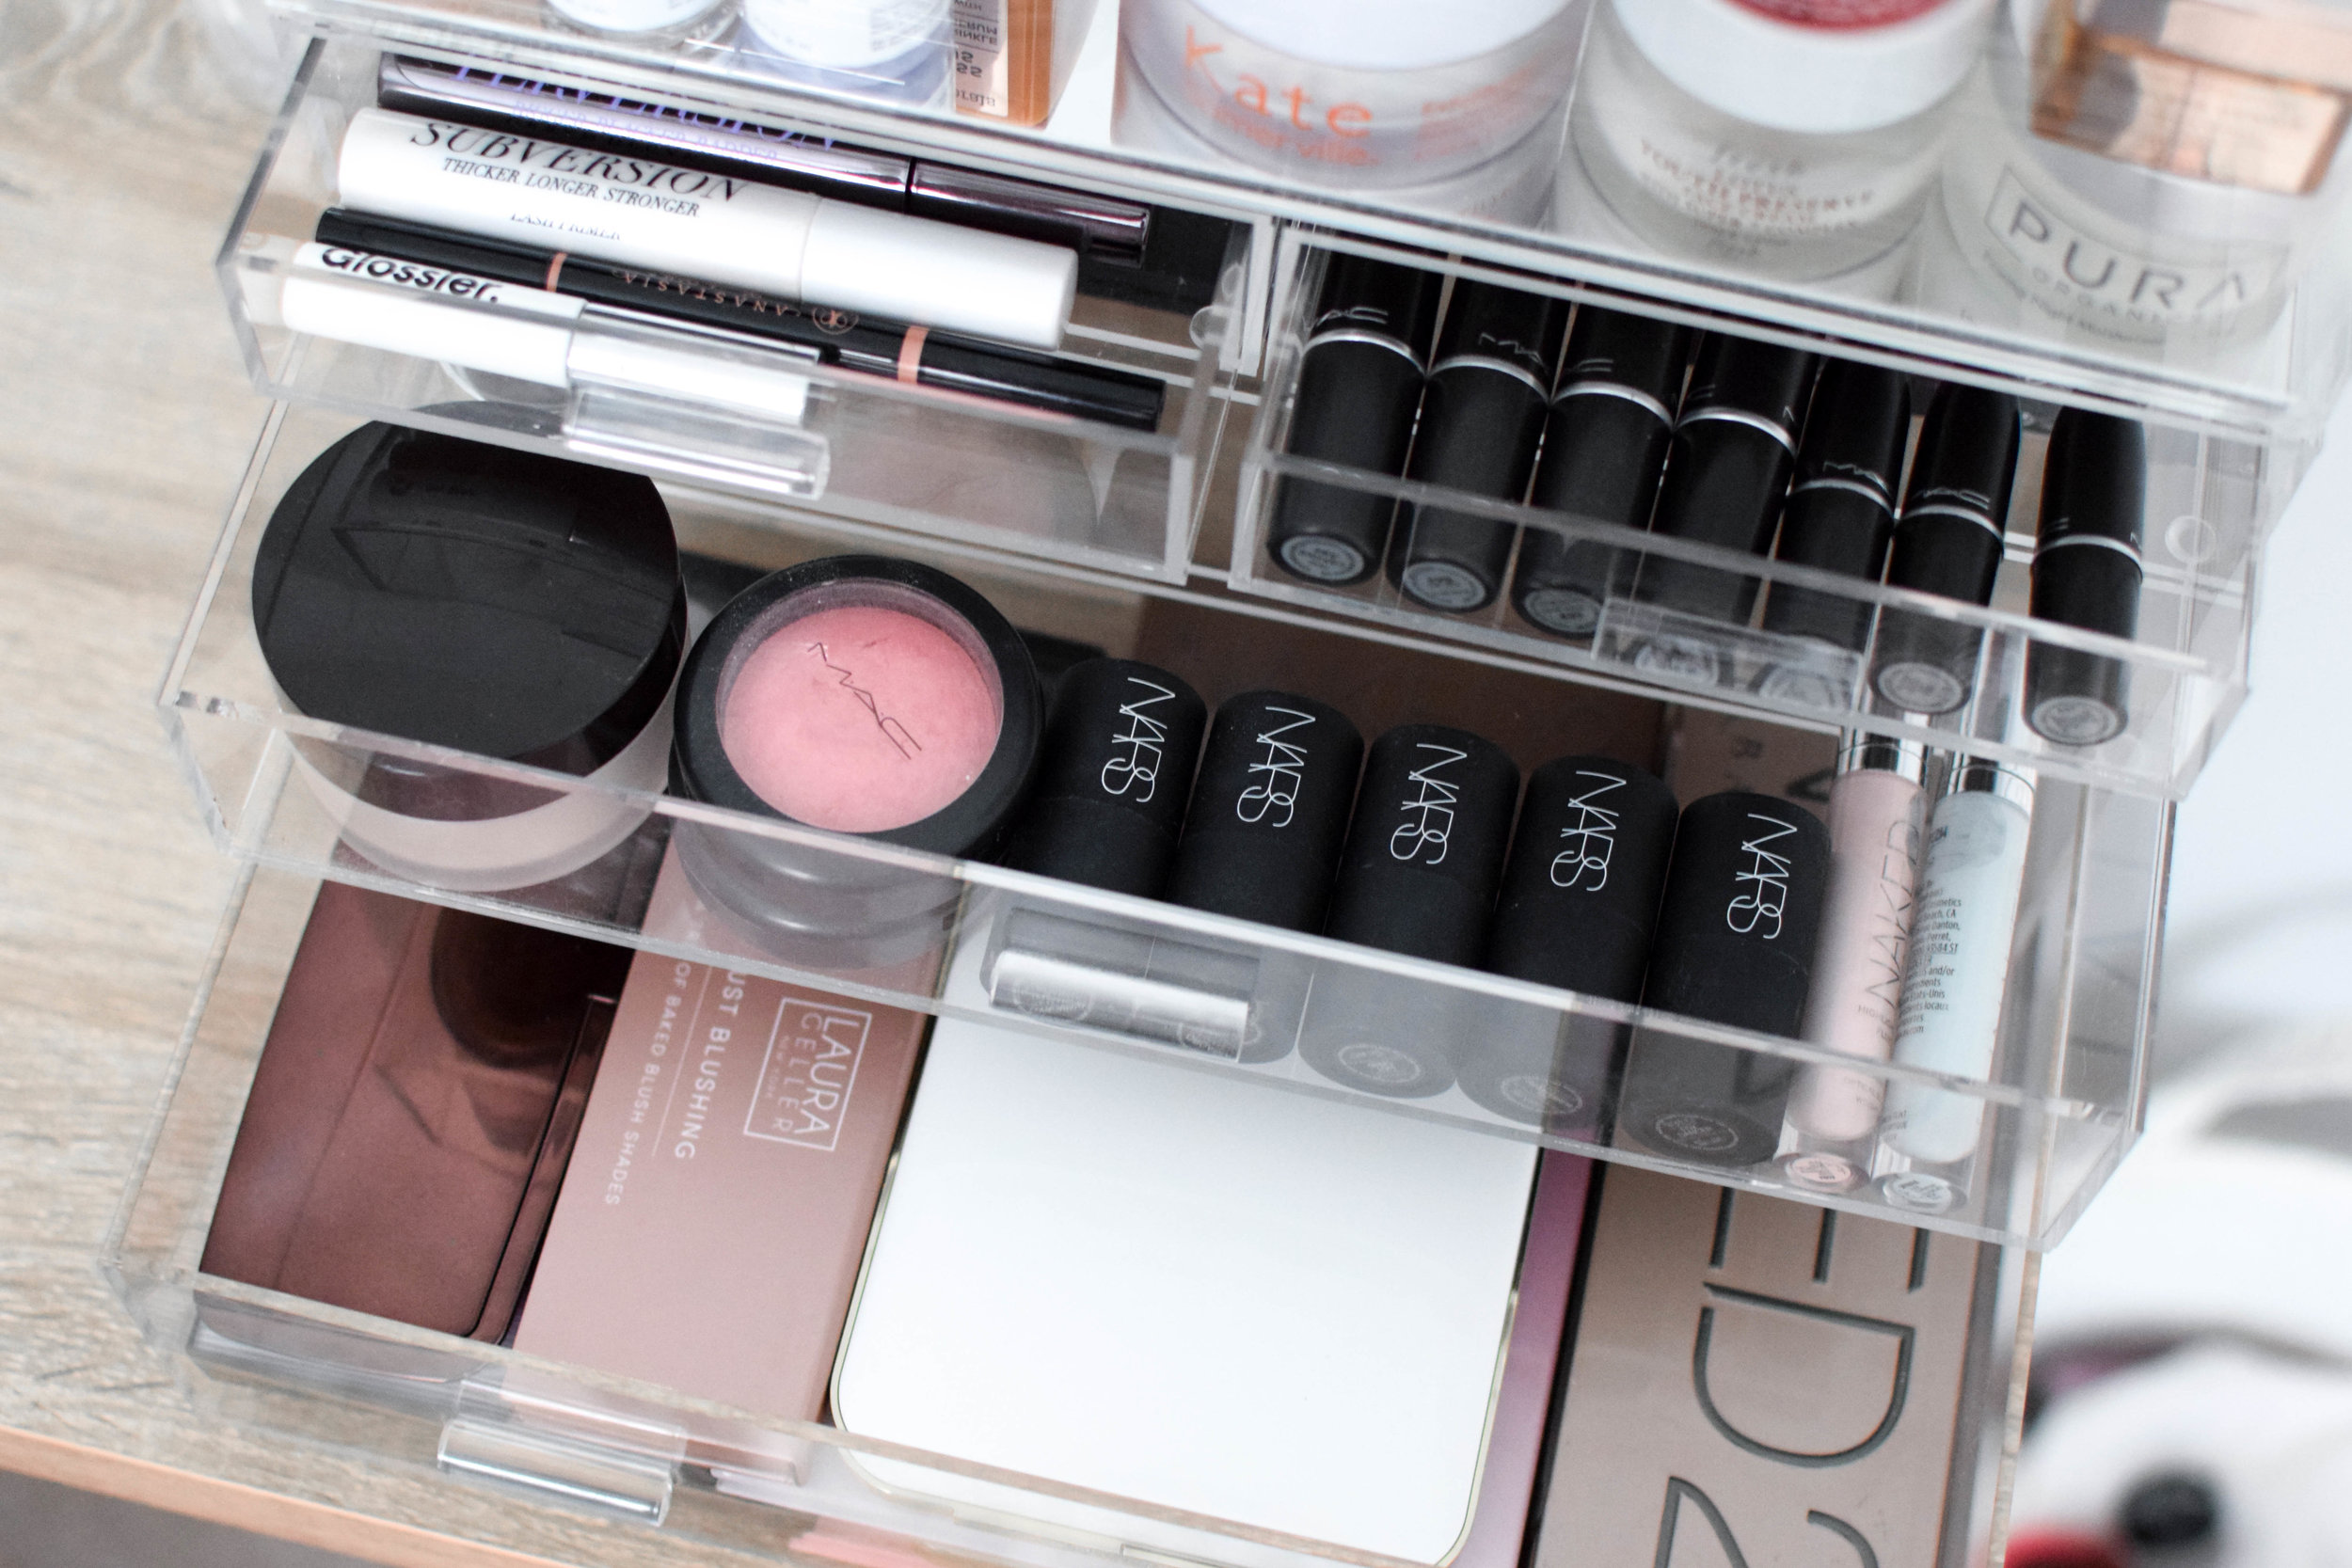 How I Store & Organize My Makeup Products | Pine Barren Beauty | makeup storage, skincare storage, acrylic makeup storage, beauty products, skincare products, makeup products